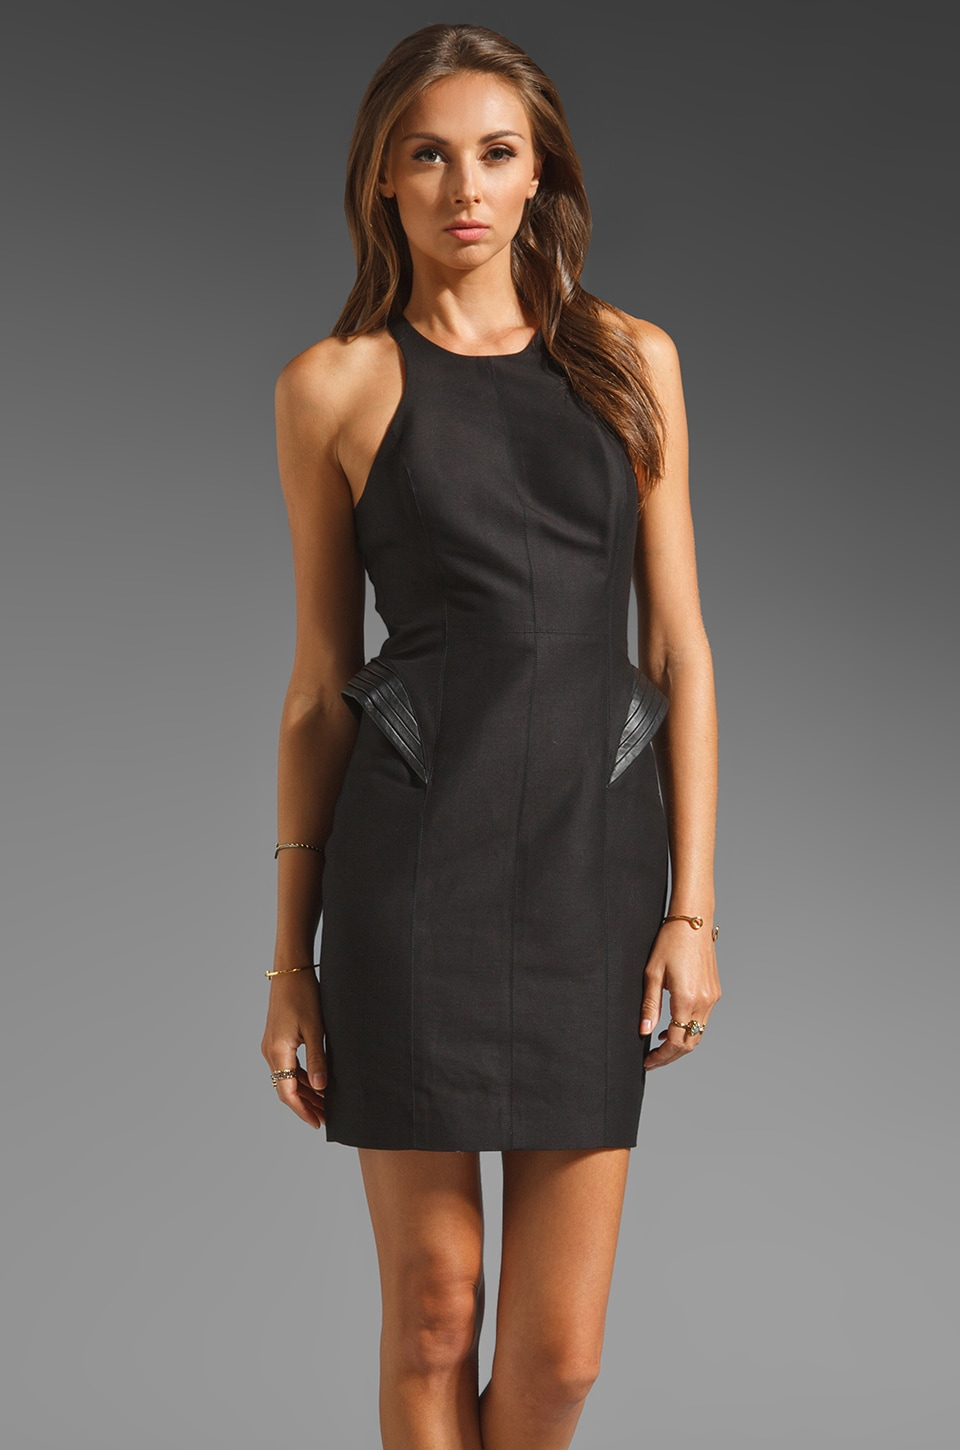 Halston Heritage Racerback Silk Cotton Faille Fitted Dress w/ Leather Detail at Hip in Black